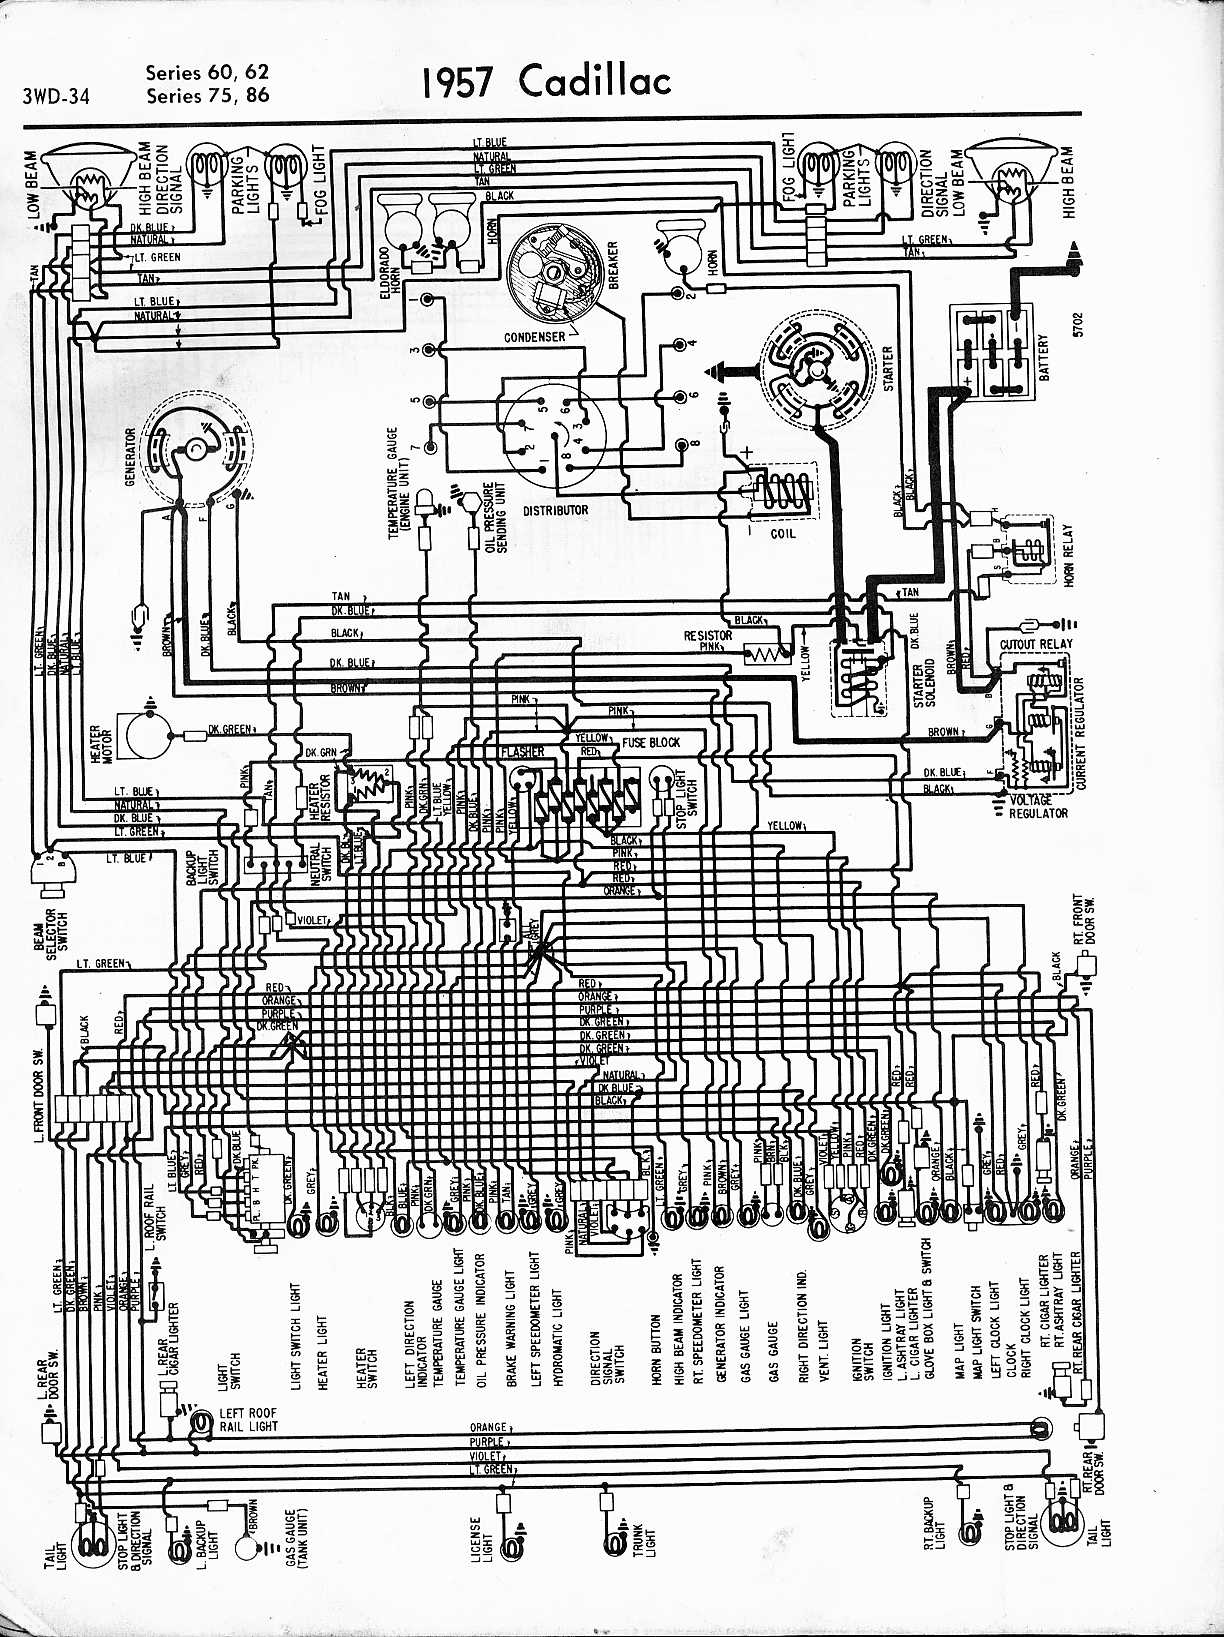 Visonik Model Vb101pk Wiring Diagram Reveolution Of Cadillac Diagrams Experts U2022 Rh Evilcloud Co Uk Animal